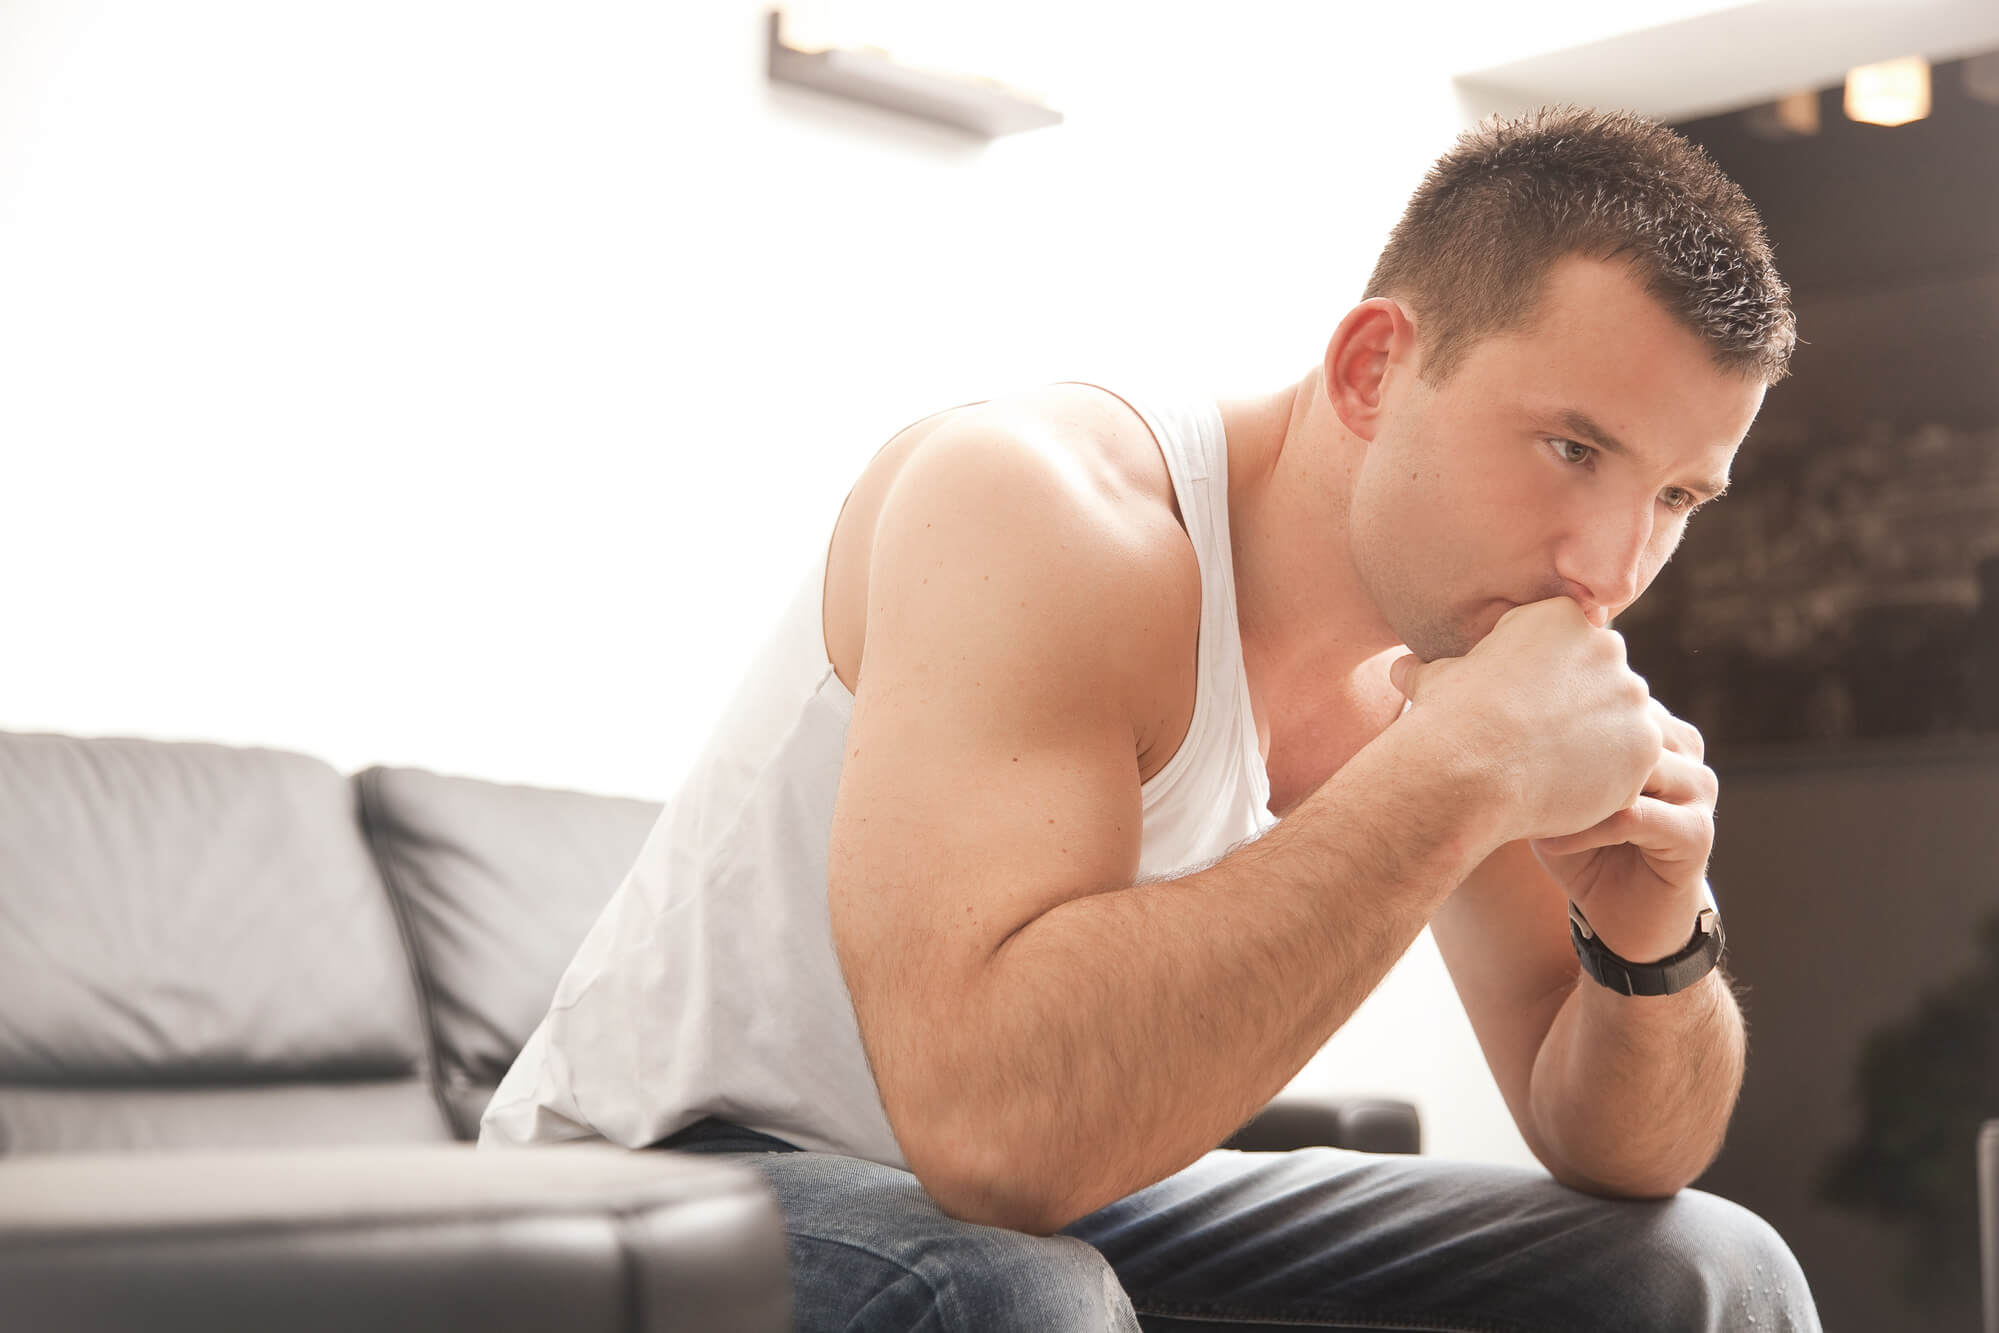 A man in a white tank top sits on a sofa with his chin resting on his hands. He looks worried, and his mood may be affected by low testosterone.